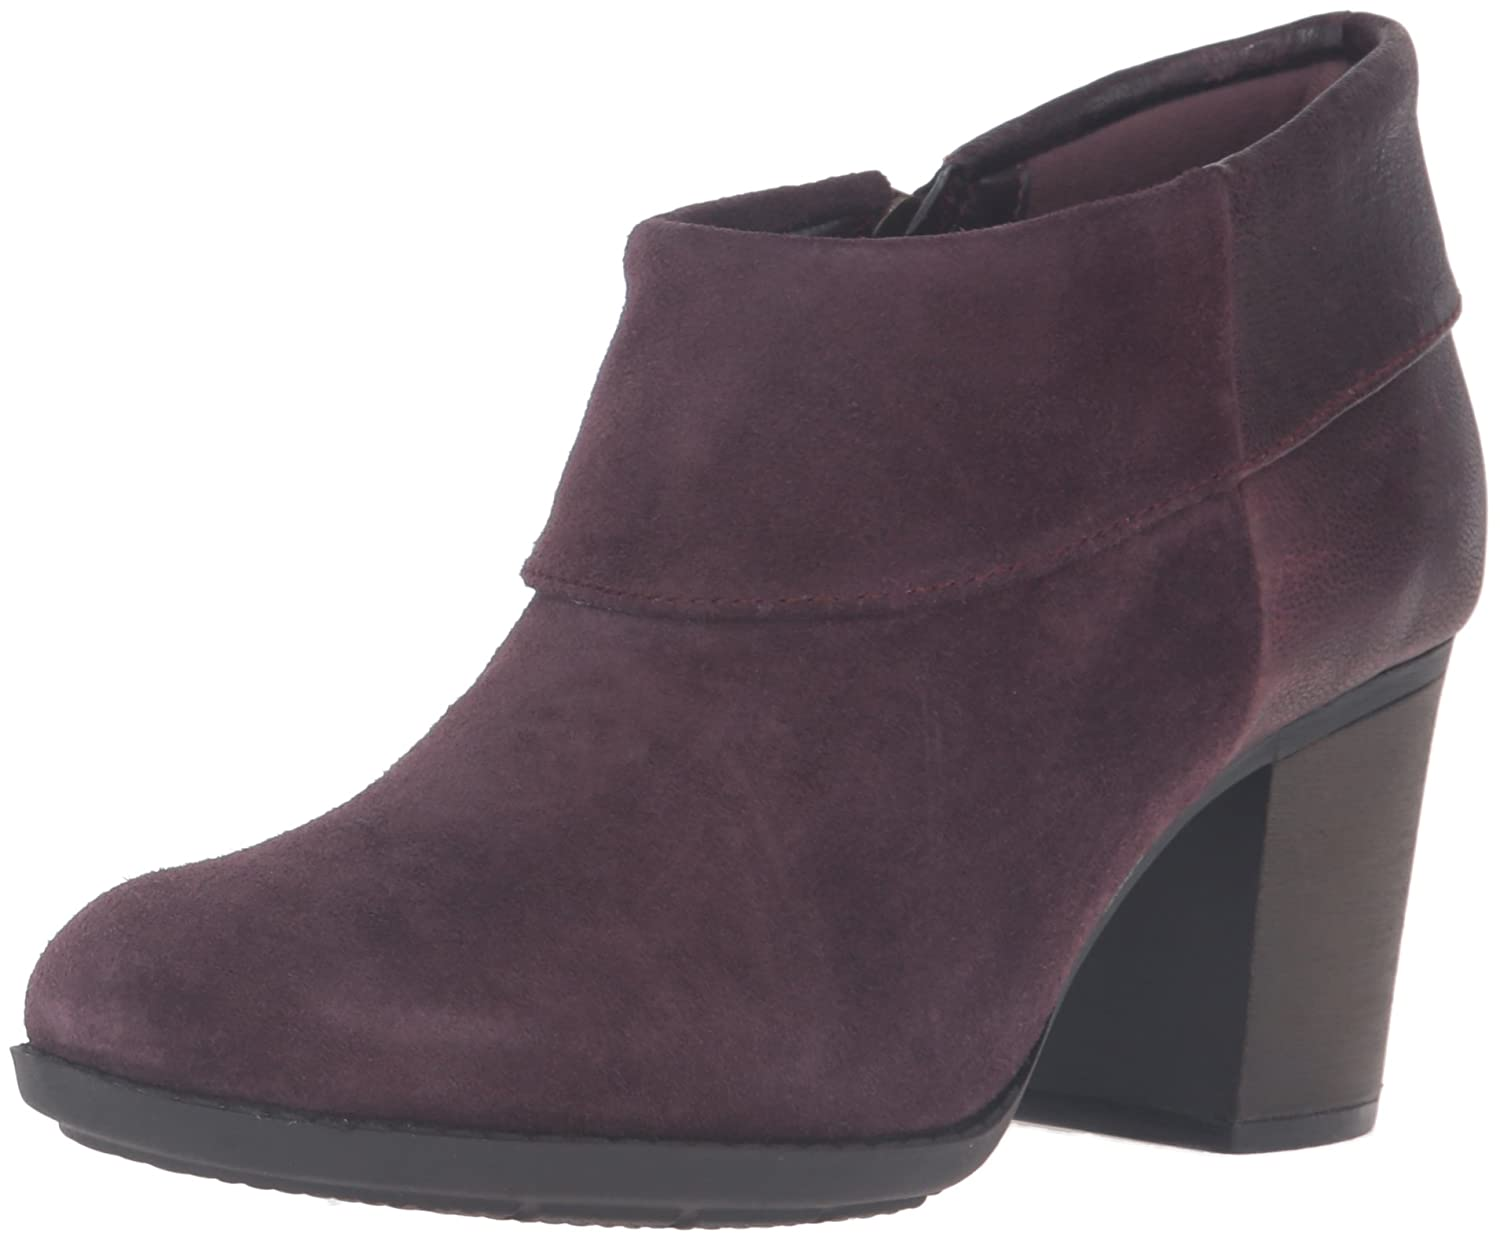 CLARKS Women's Enfield Canal Boot B0198WDV1K 11 B(M) US|Aubergine Suede